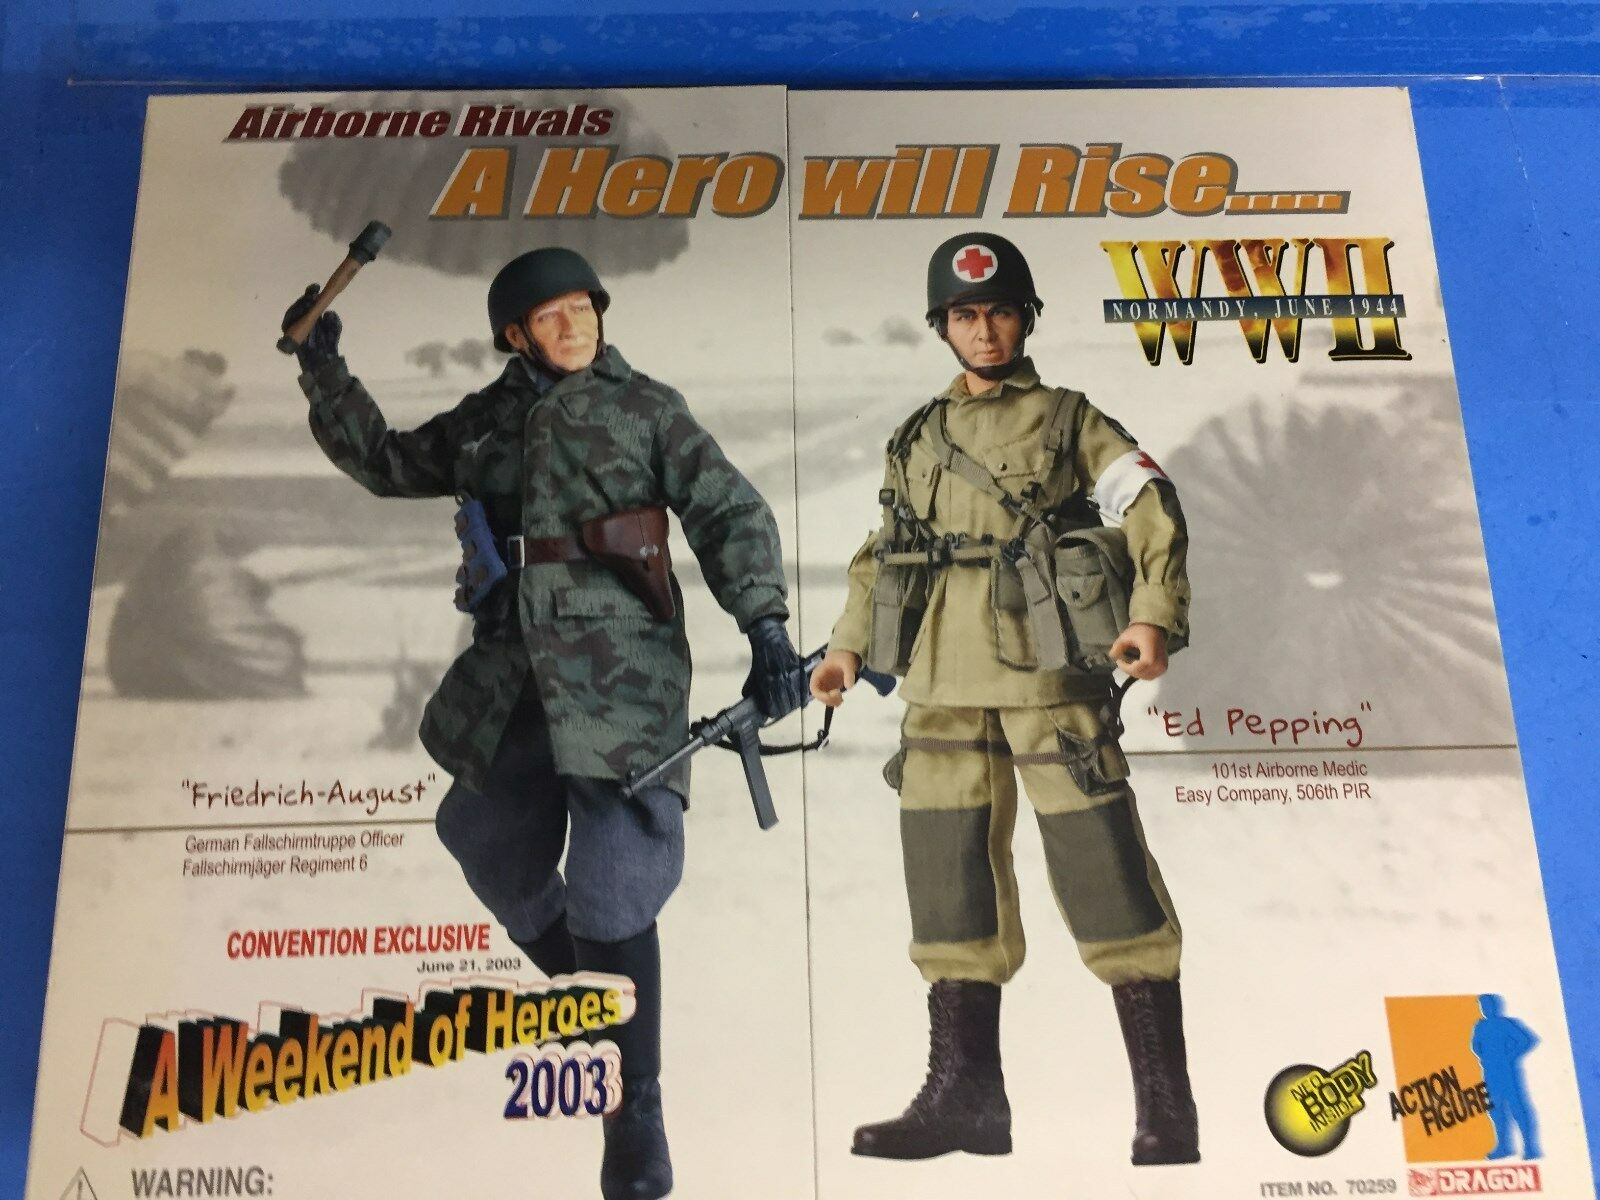 DRAGON 2003 Convention Exclusive Airborne Rivals WW II Action Figure New In Box